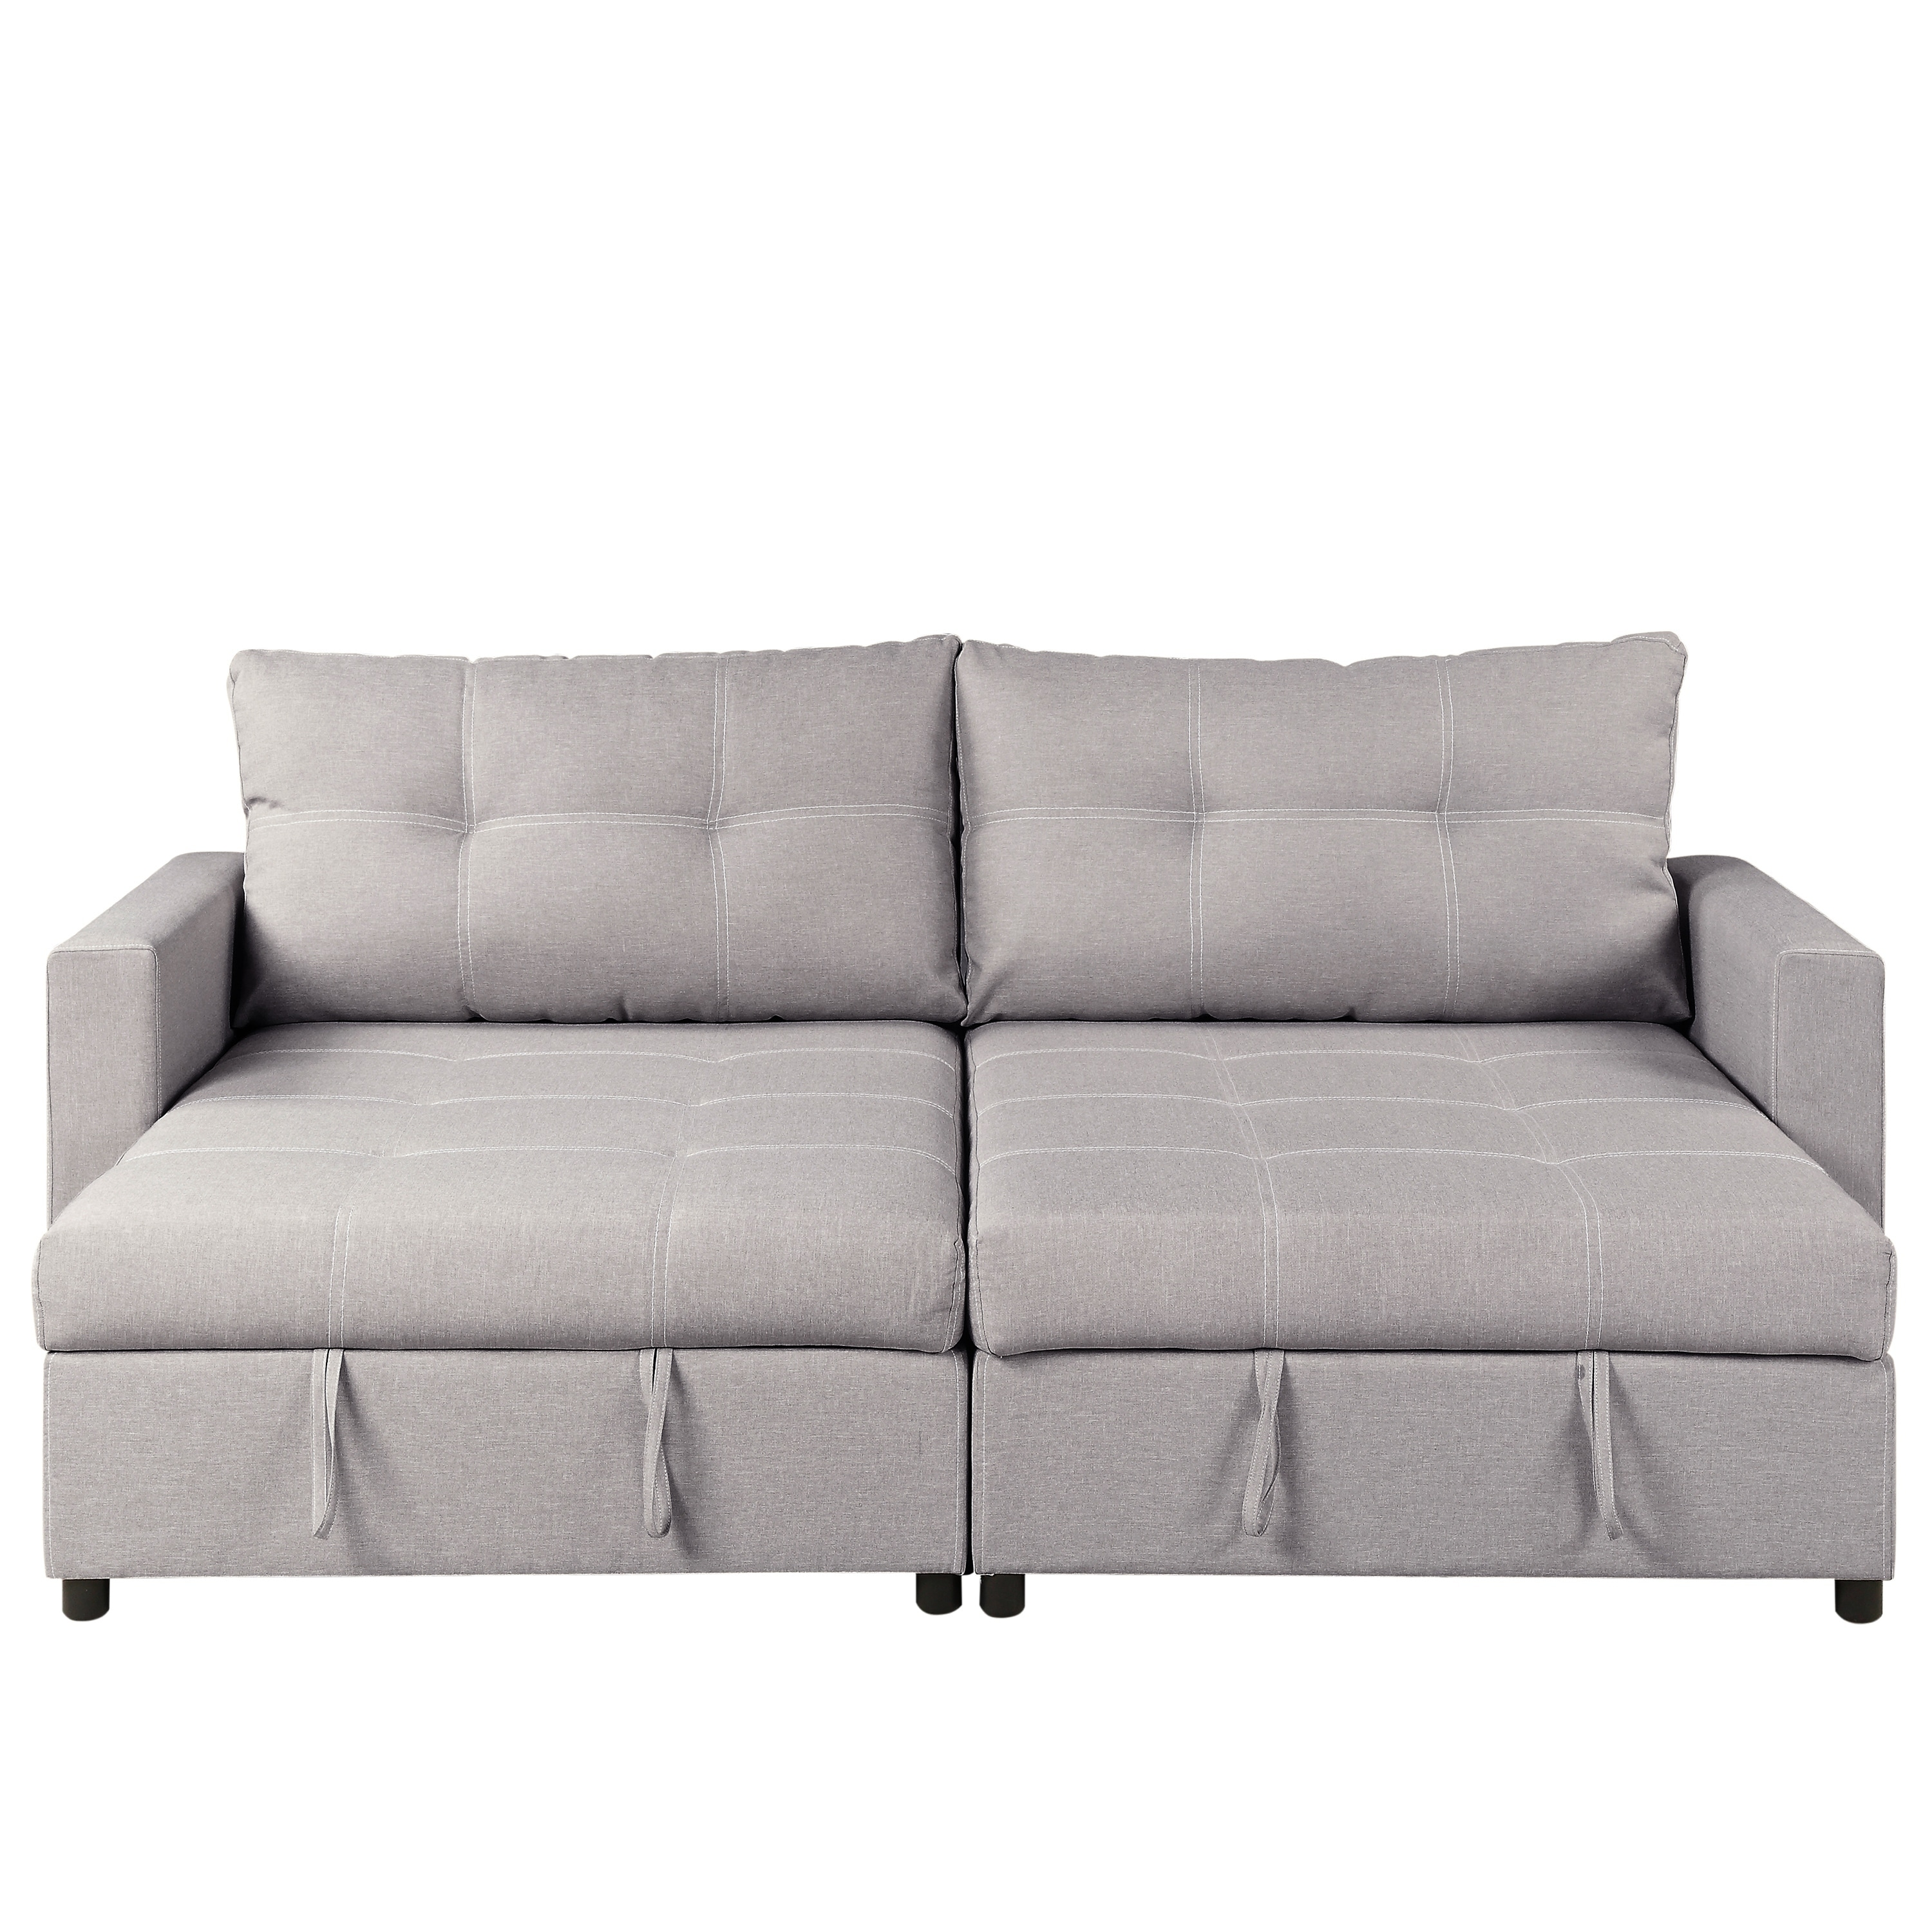 Shop Robin Polyester Sofa Chaise With 2 Storage Compartments Free